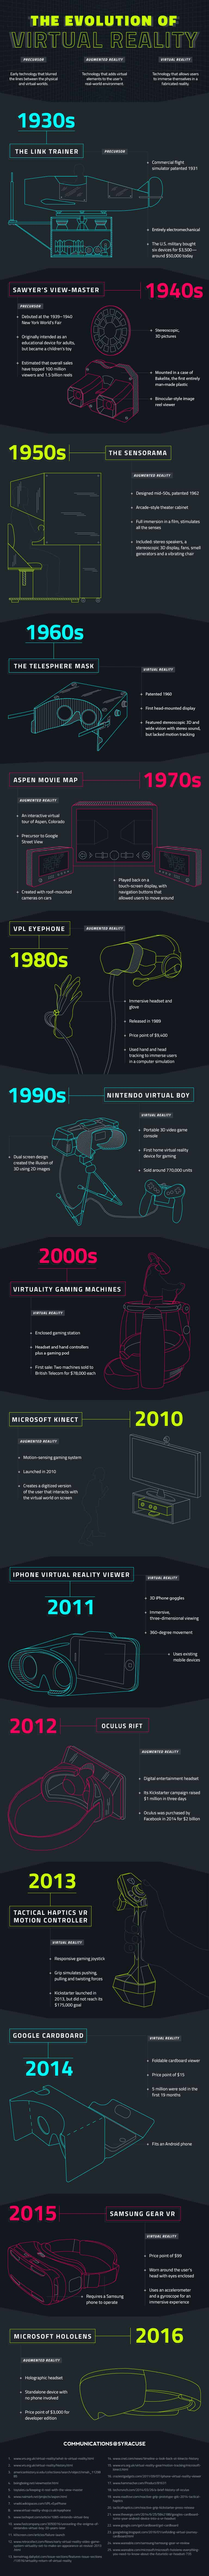 Infographic: The Evolution of Virtual Reality